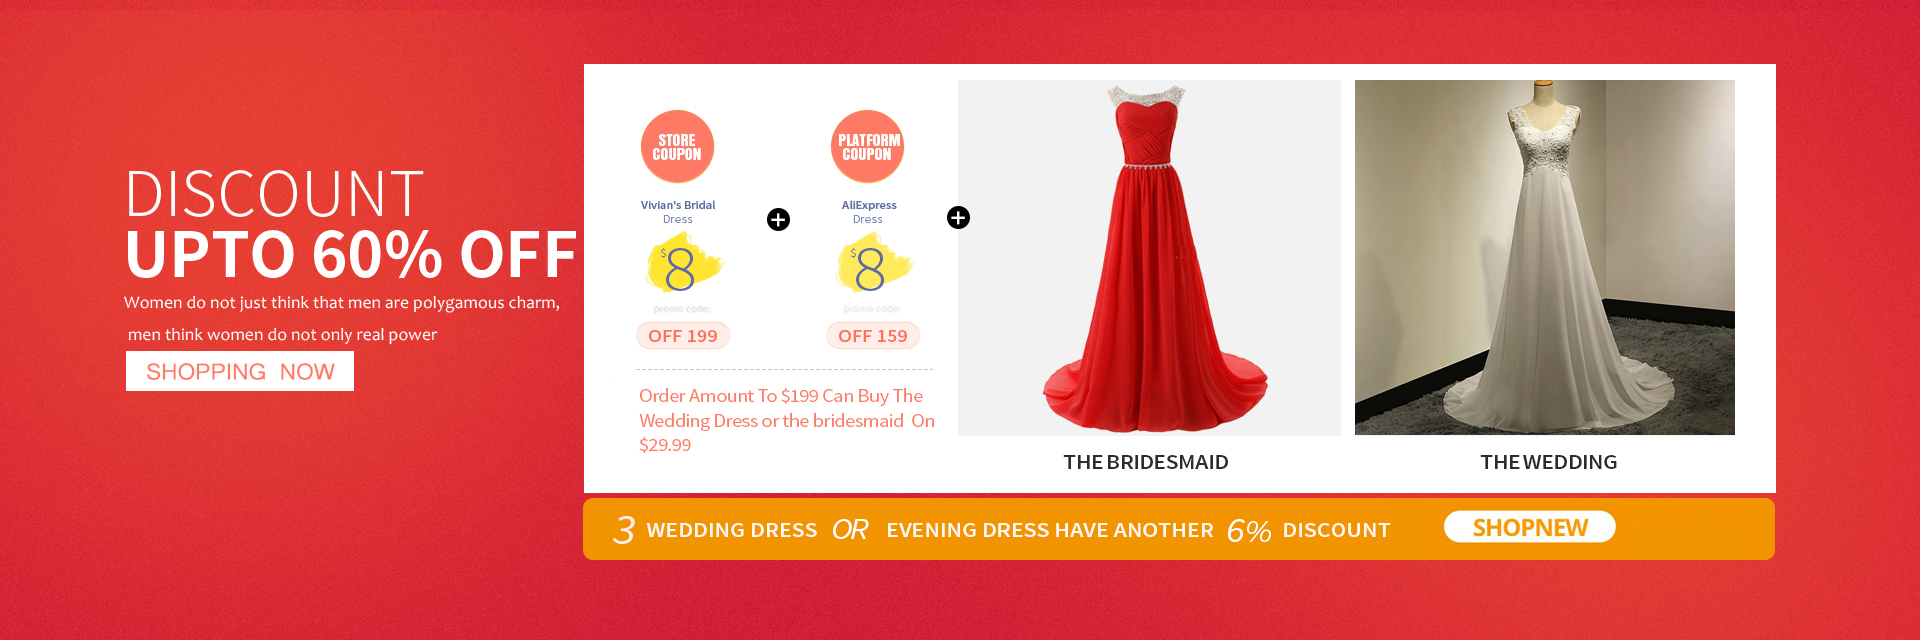 0b41f28321 Vivian's Bridal Official Store - Small Orders Online Store, Hot ...